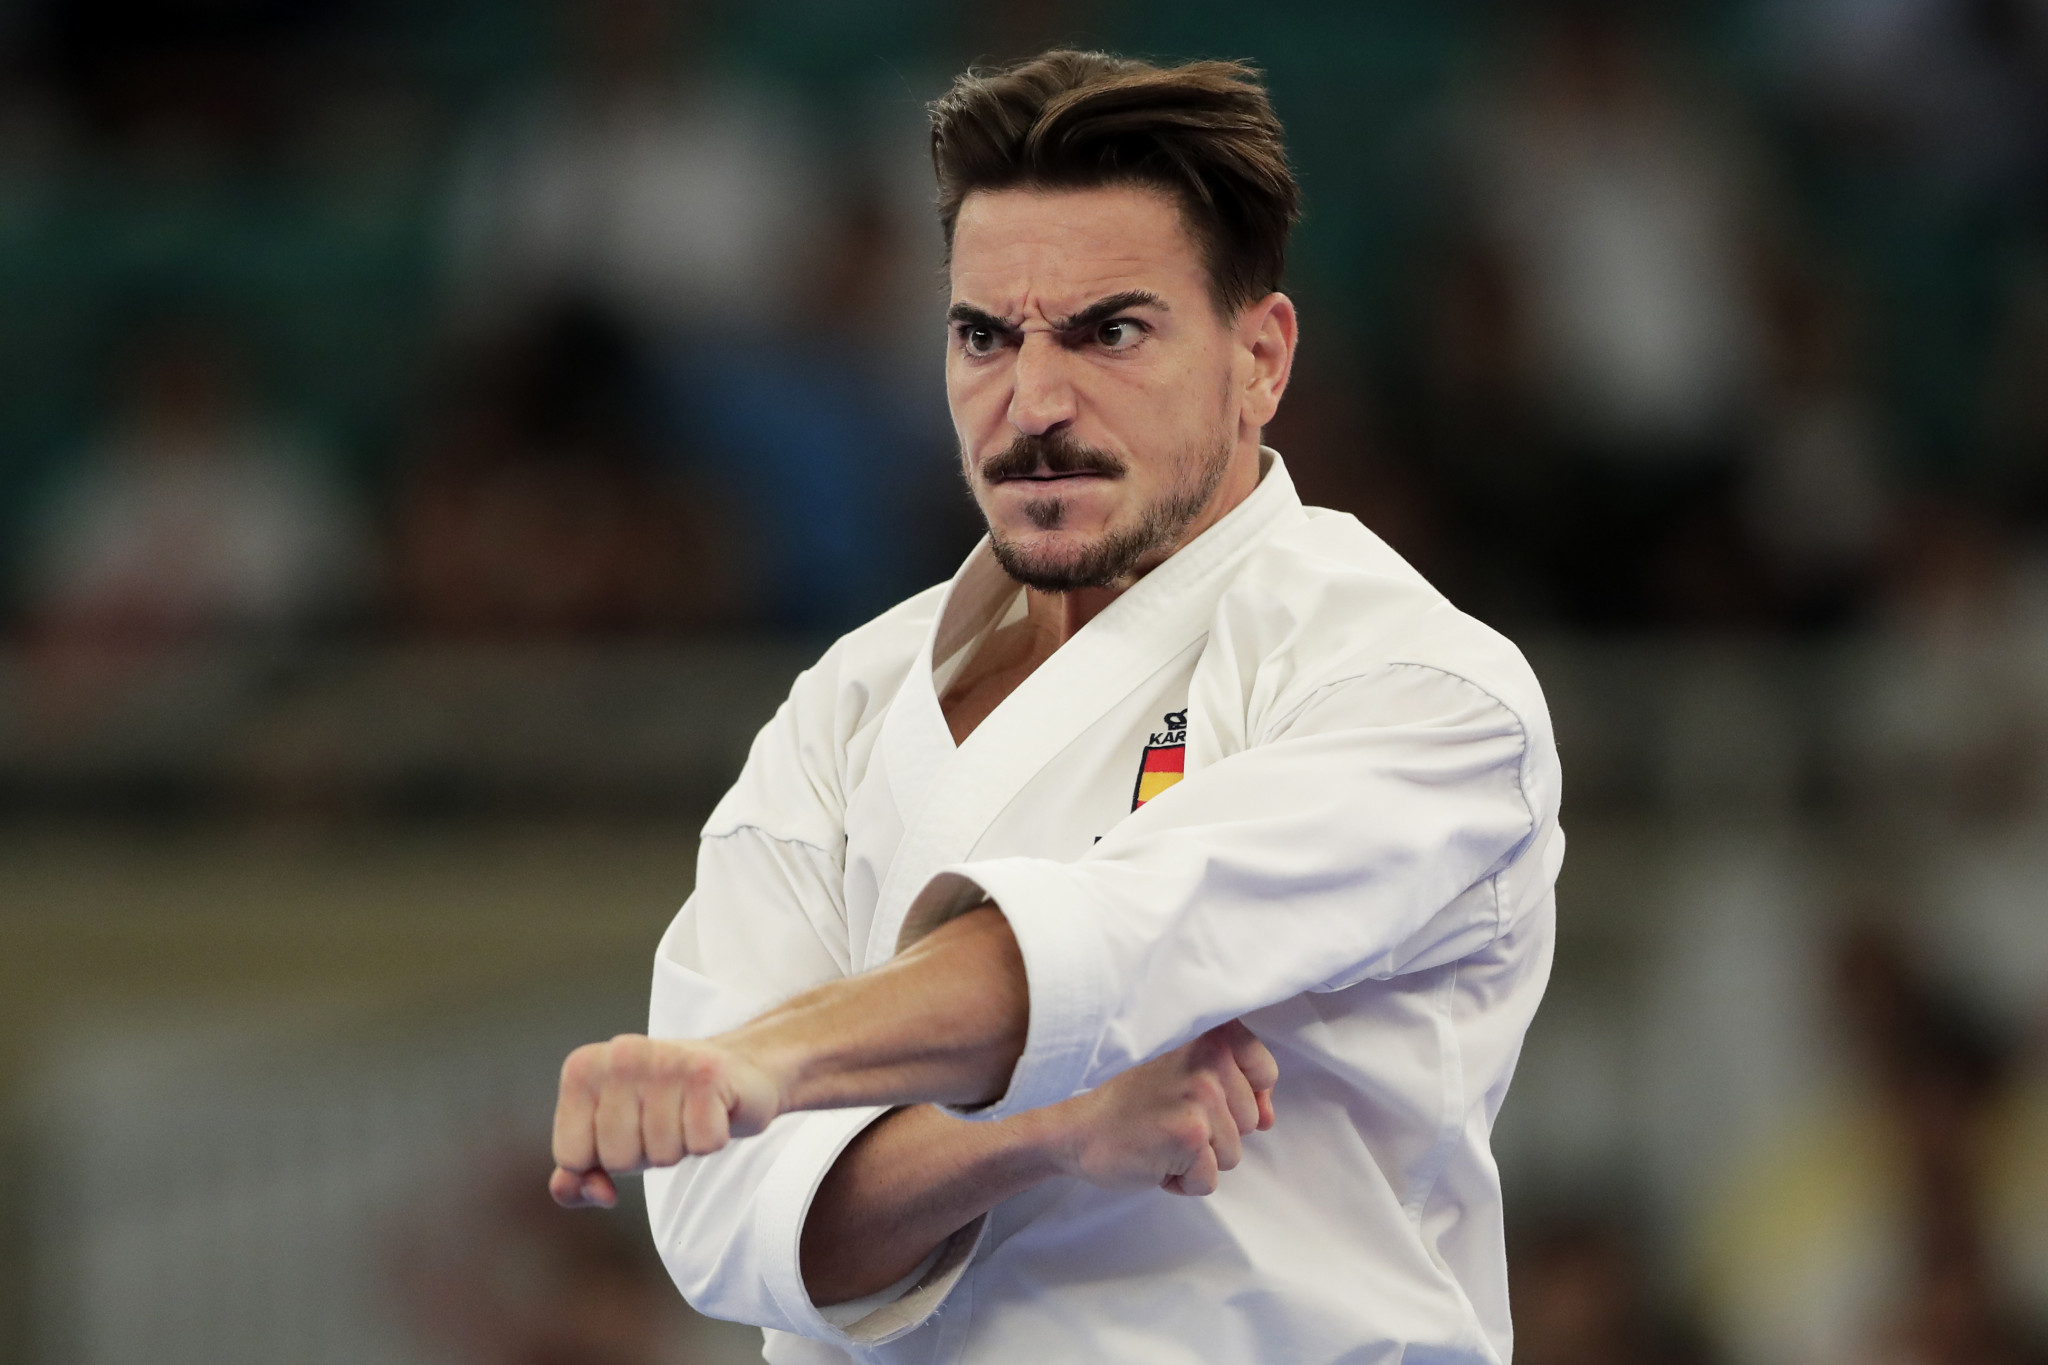 Spain's Damien Quintero reached the Male Kata final after winning his pool ©Getty Images